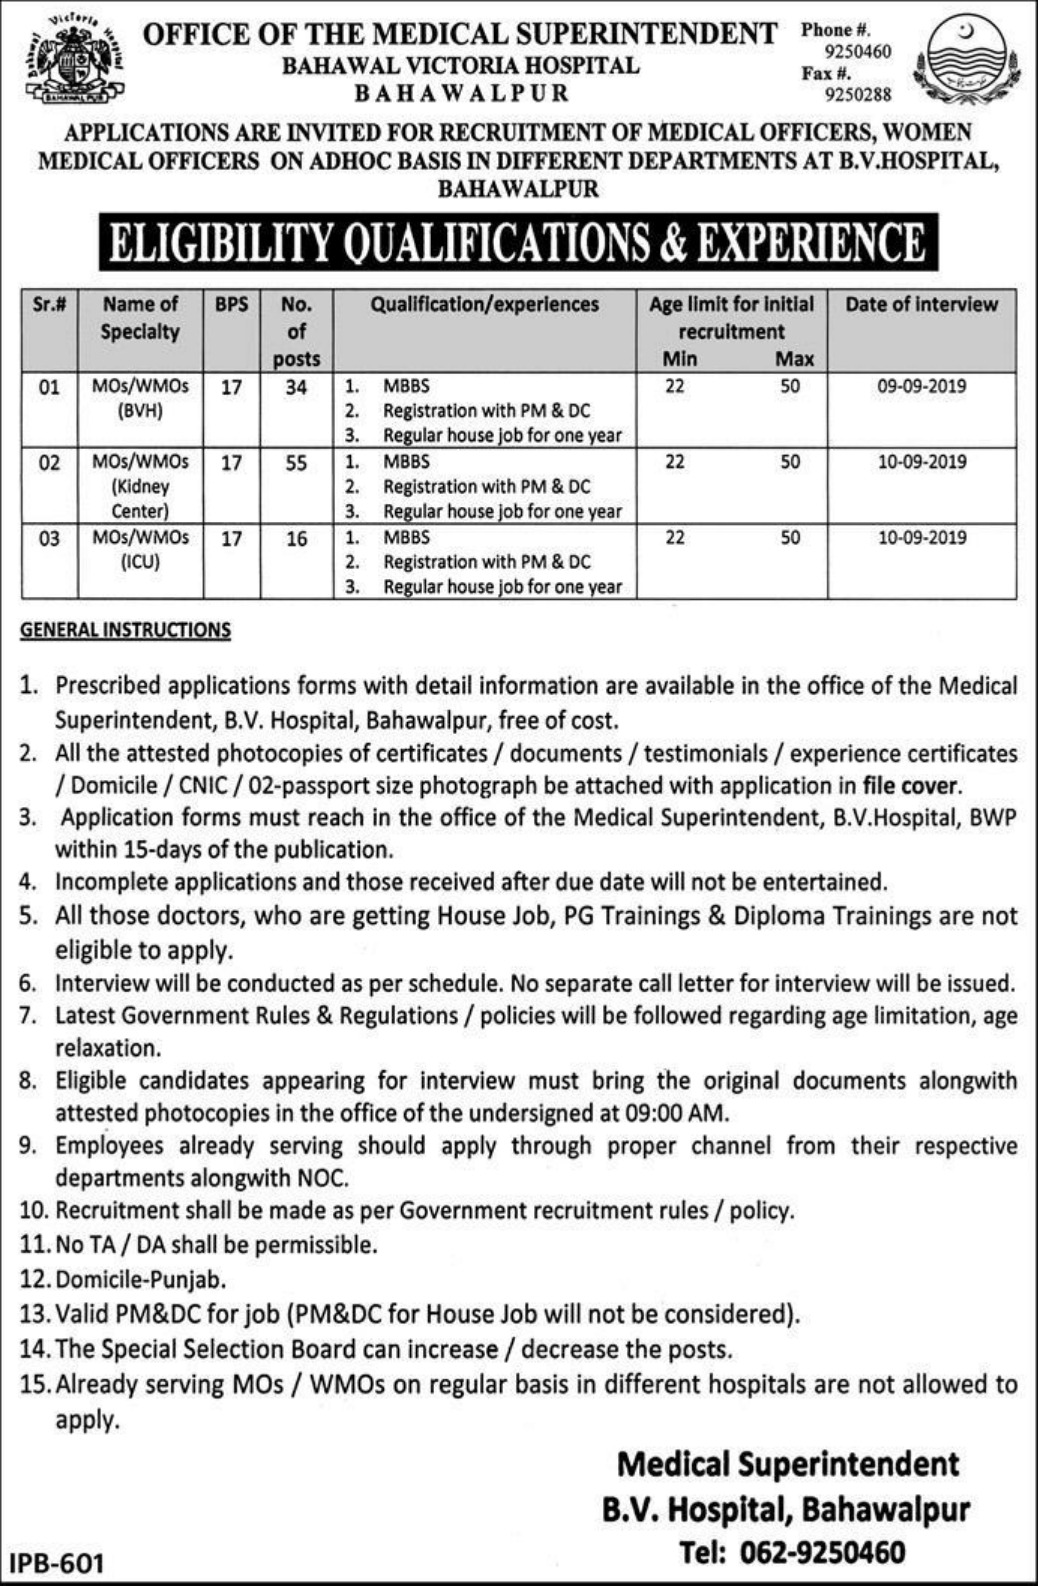 Bahawal Victoria BV Hospital Bahawalpur Jobs 2019 Recruitment of MO & WMO